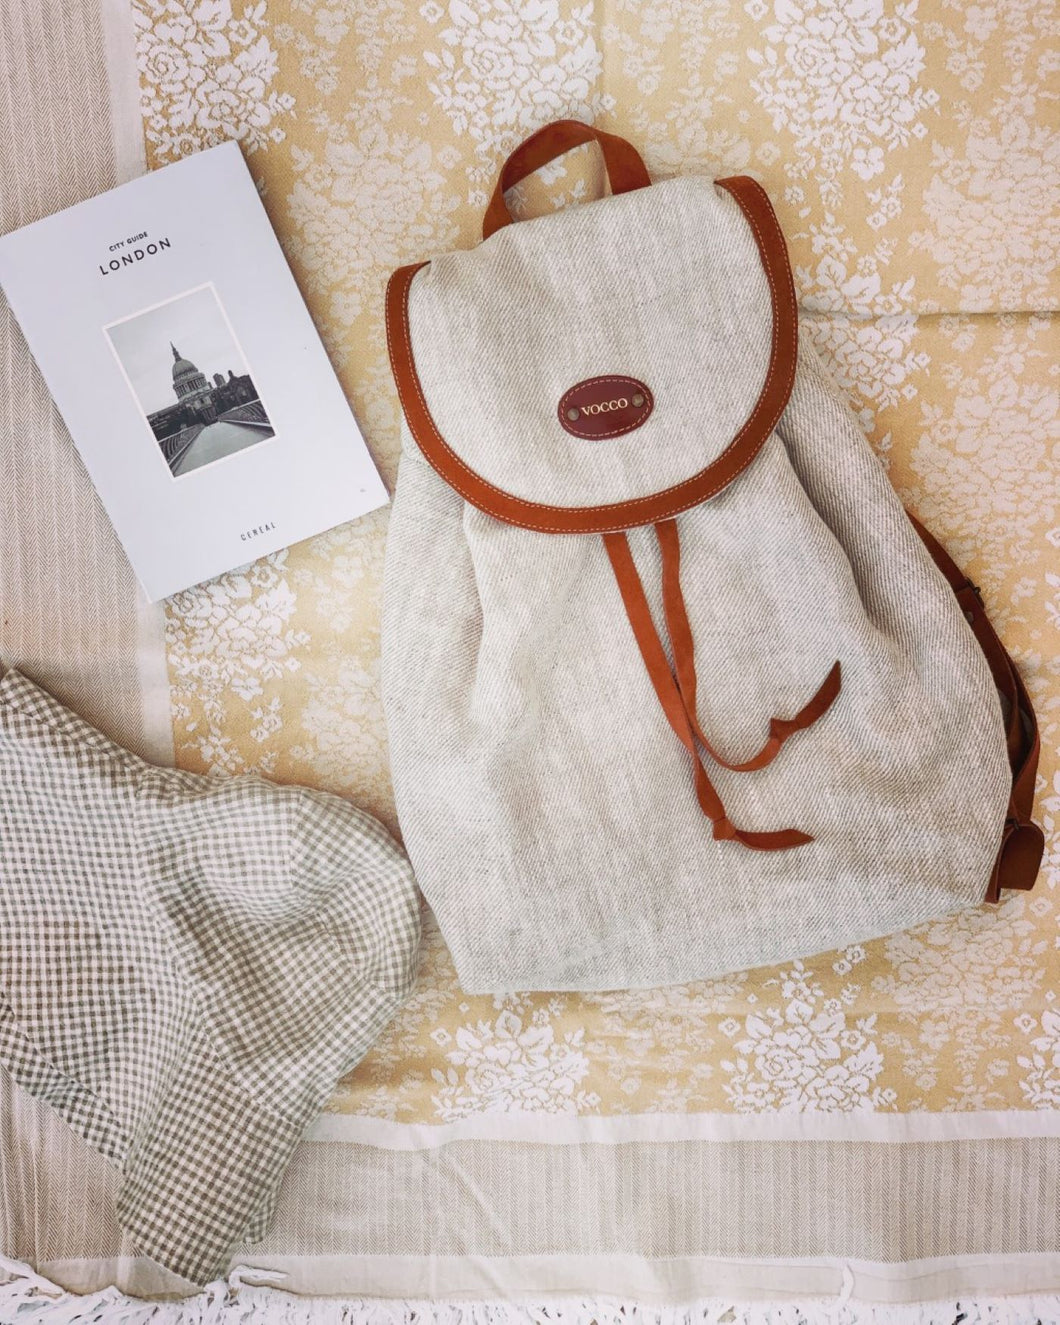 Vocco Linen Backpack Tobacco - Vocco